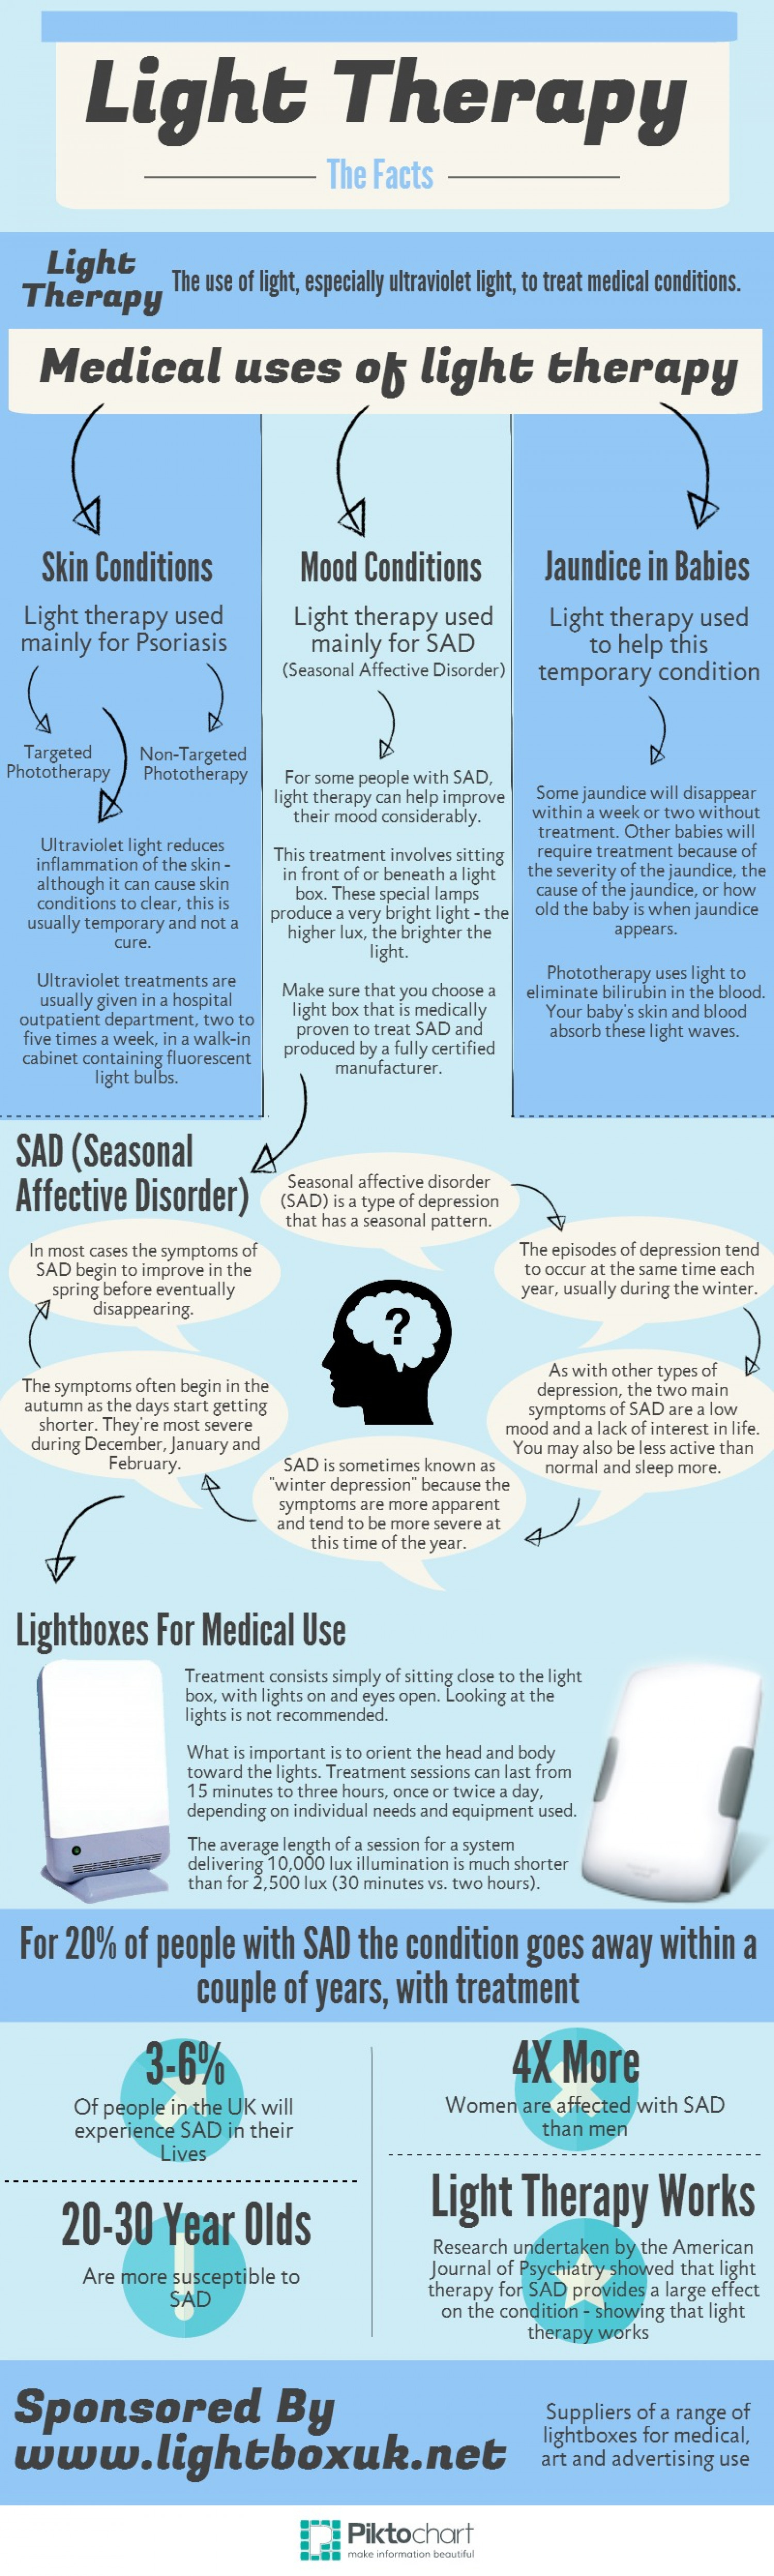 Light Therapy The Facts Infographic